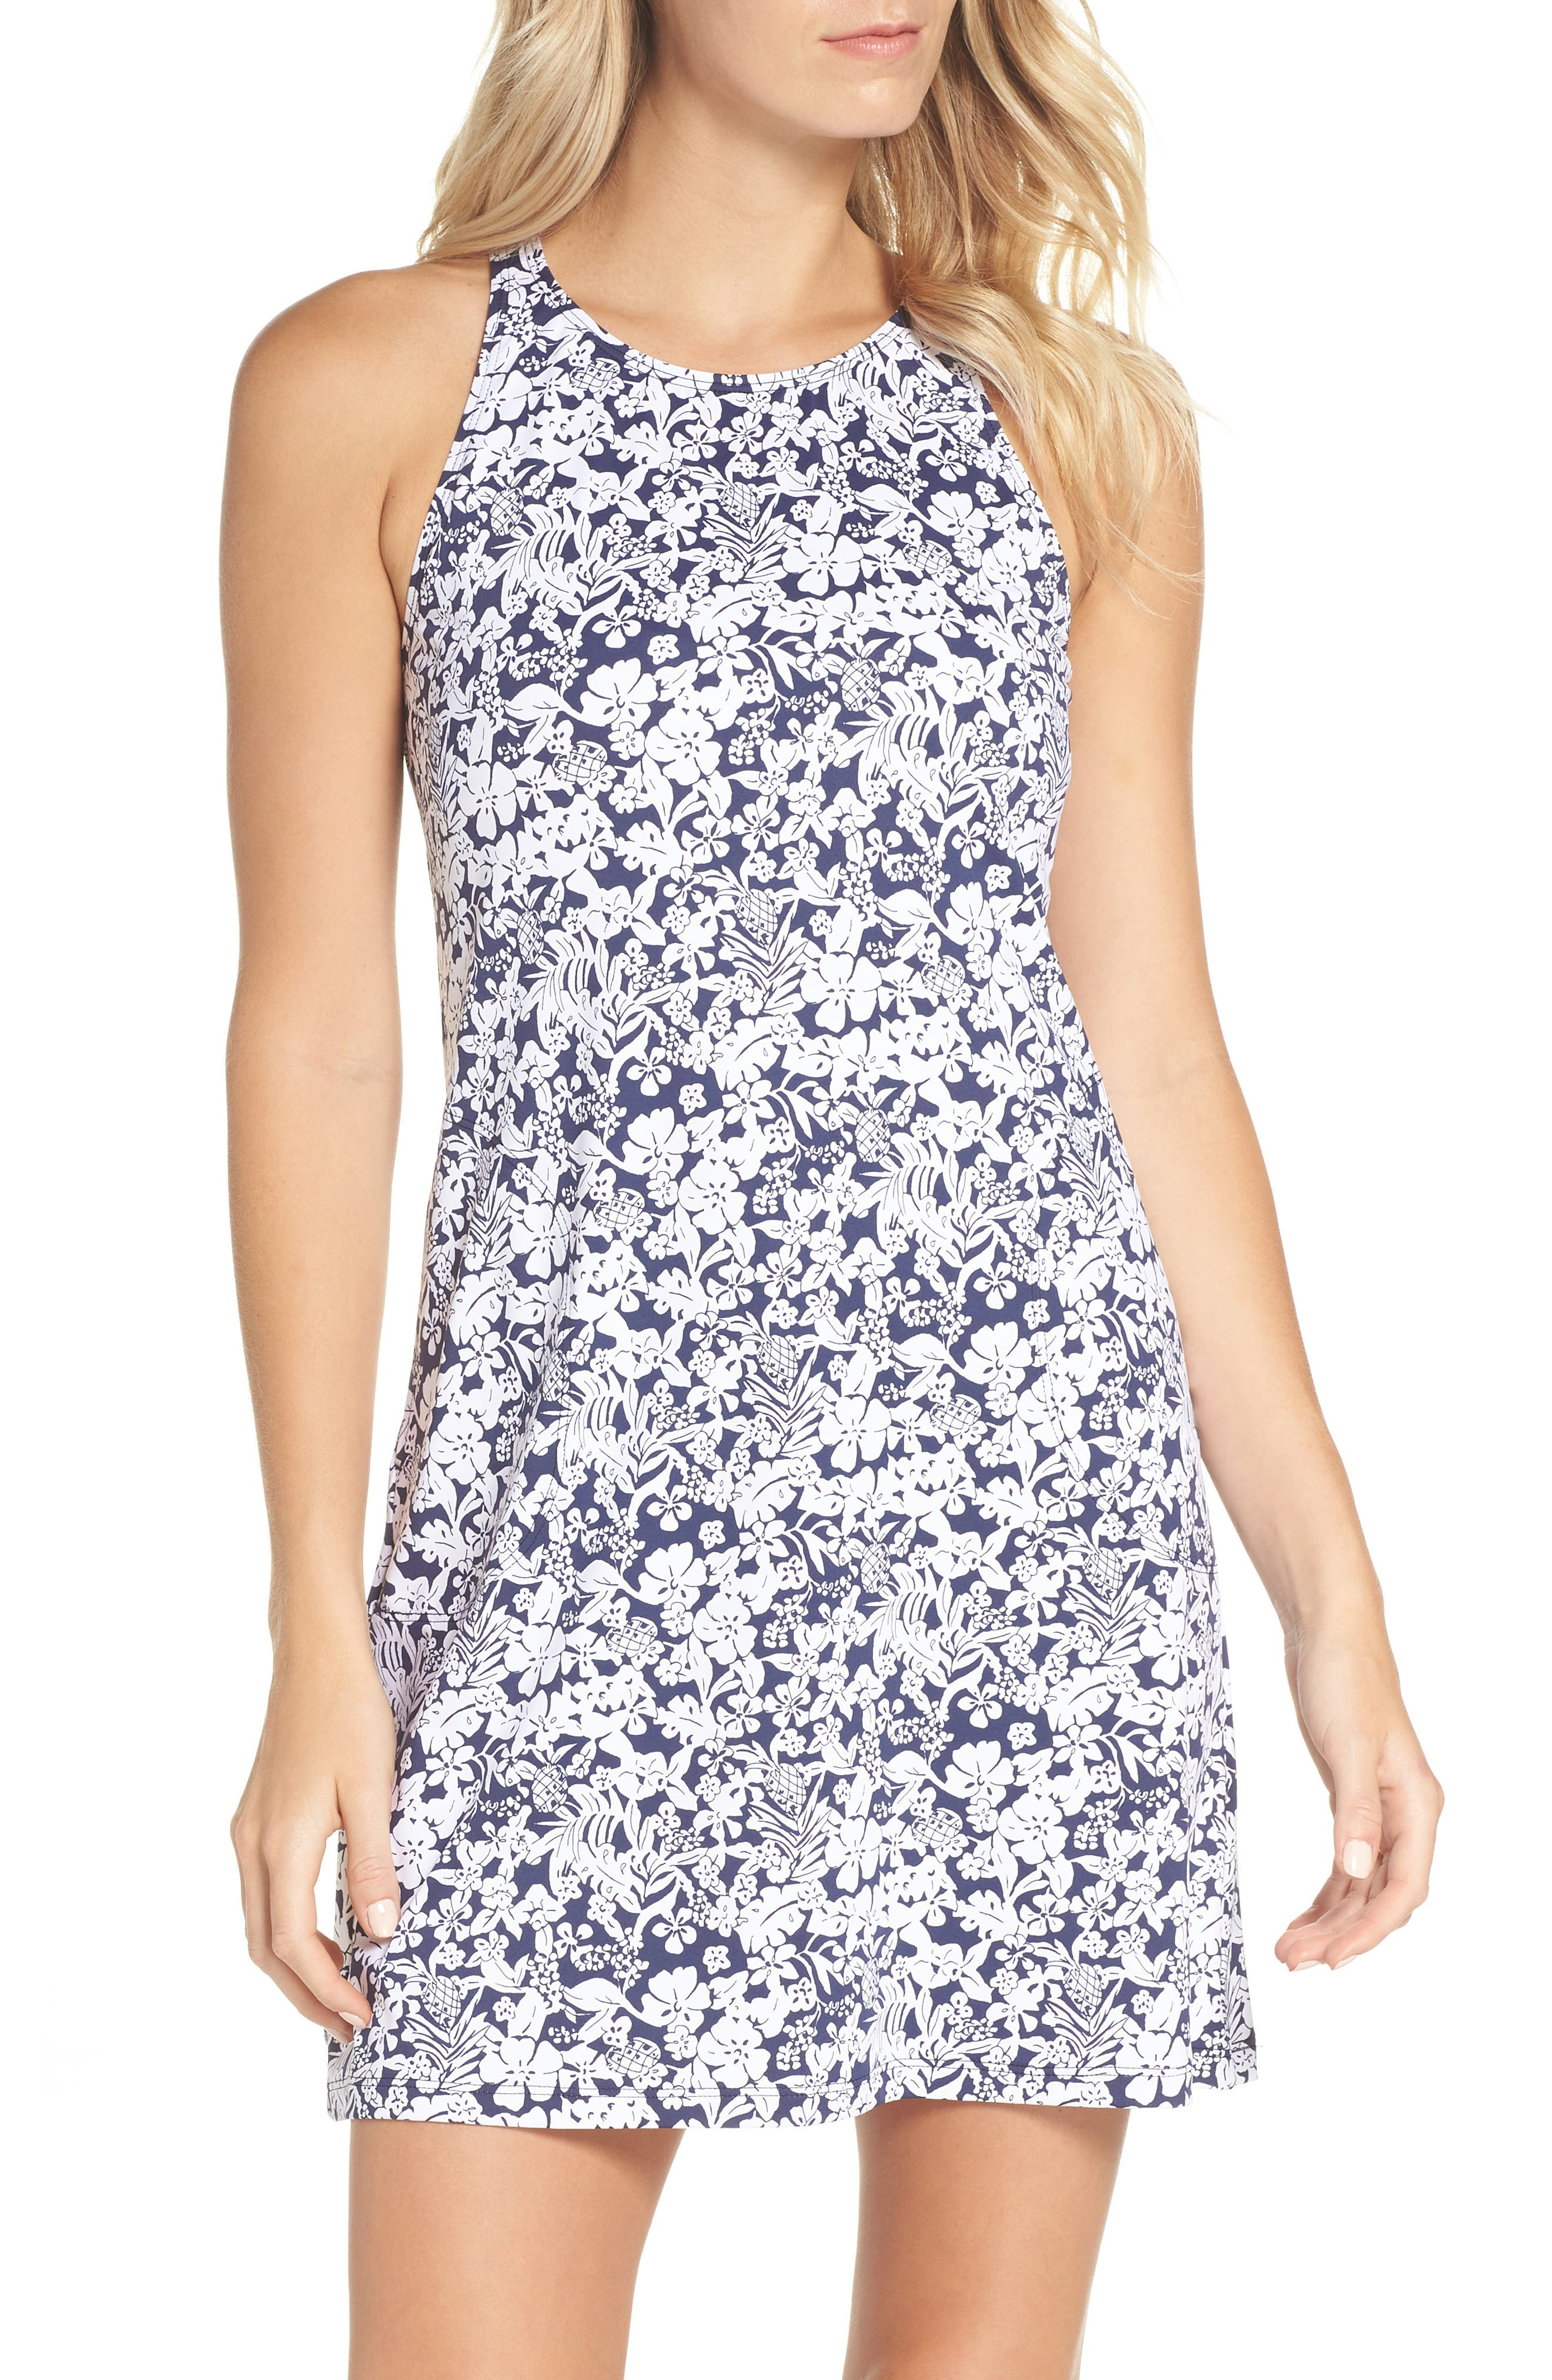 Riviera Tiles Cover-Up Dress,                         Main,                         color, 400